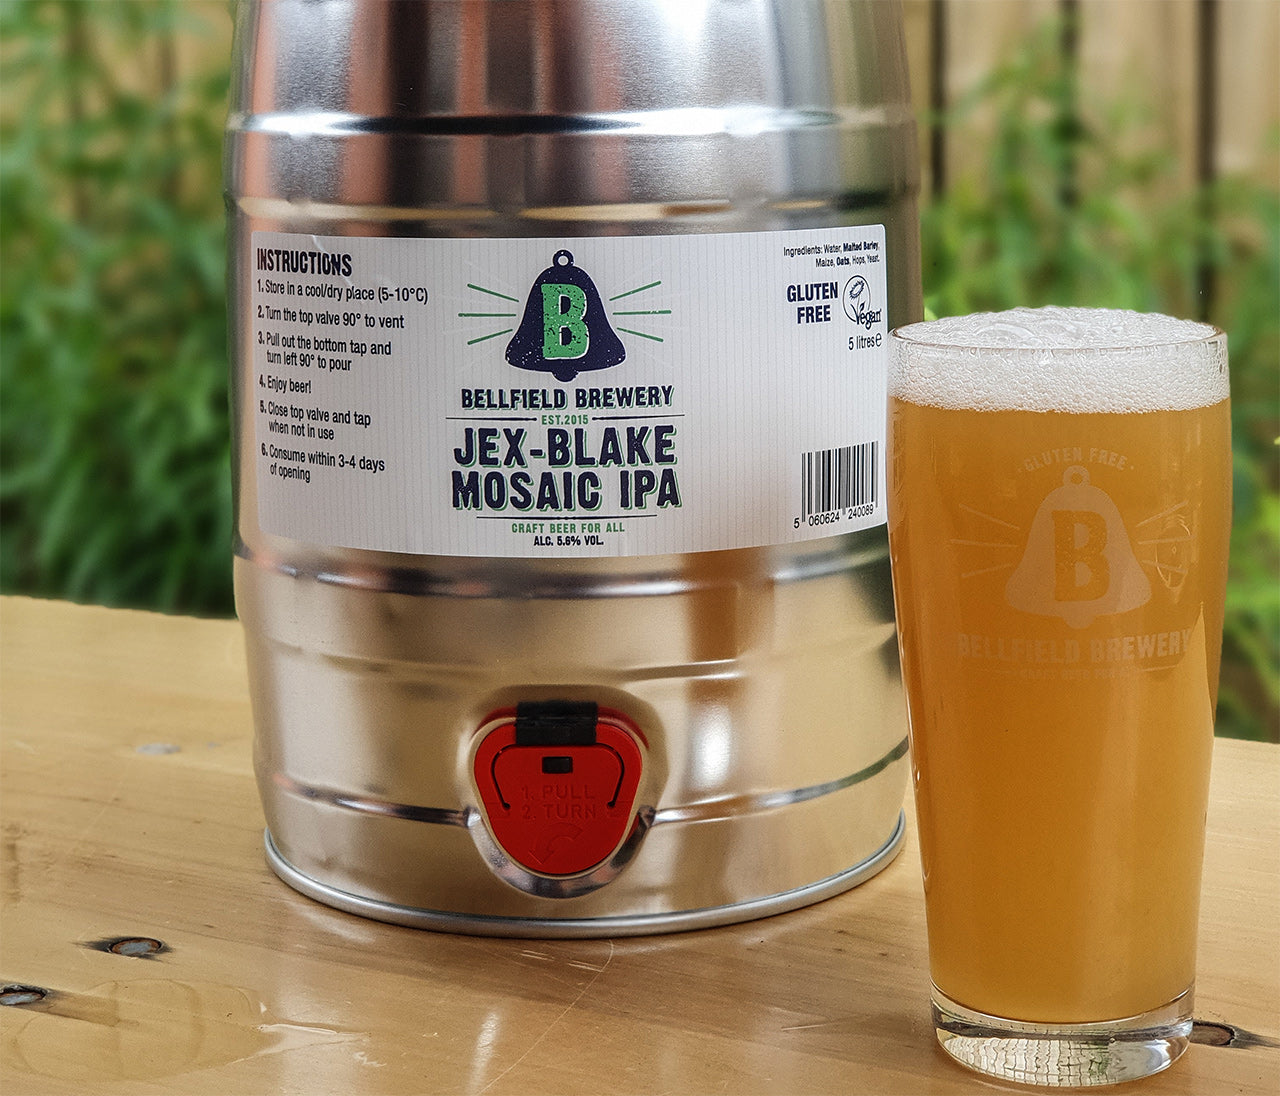 A pint of Jex-Blake Mosaic IPA next to a 5 litre mini cask of the same